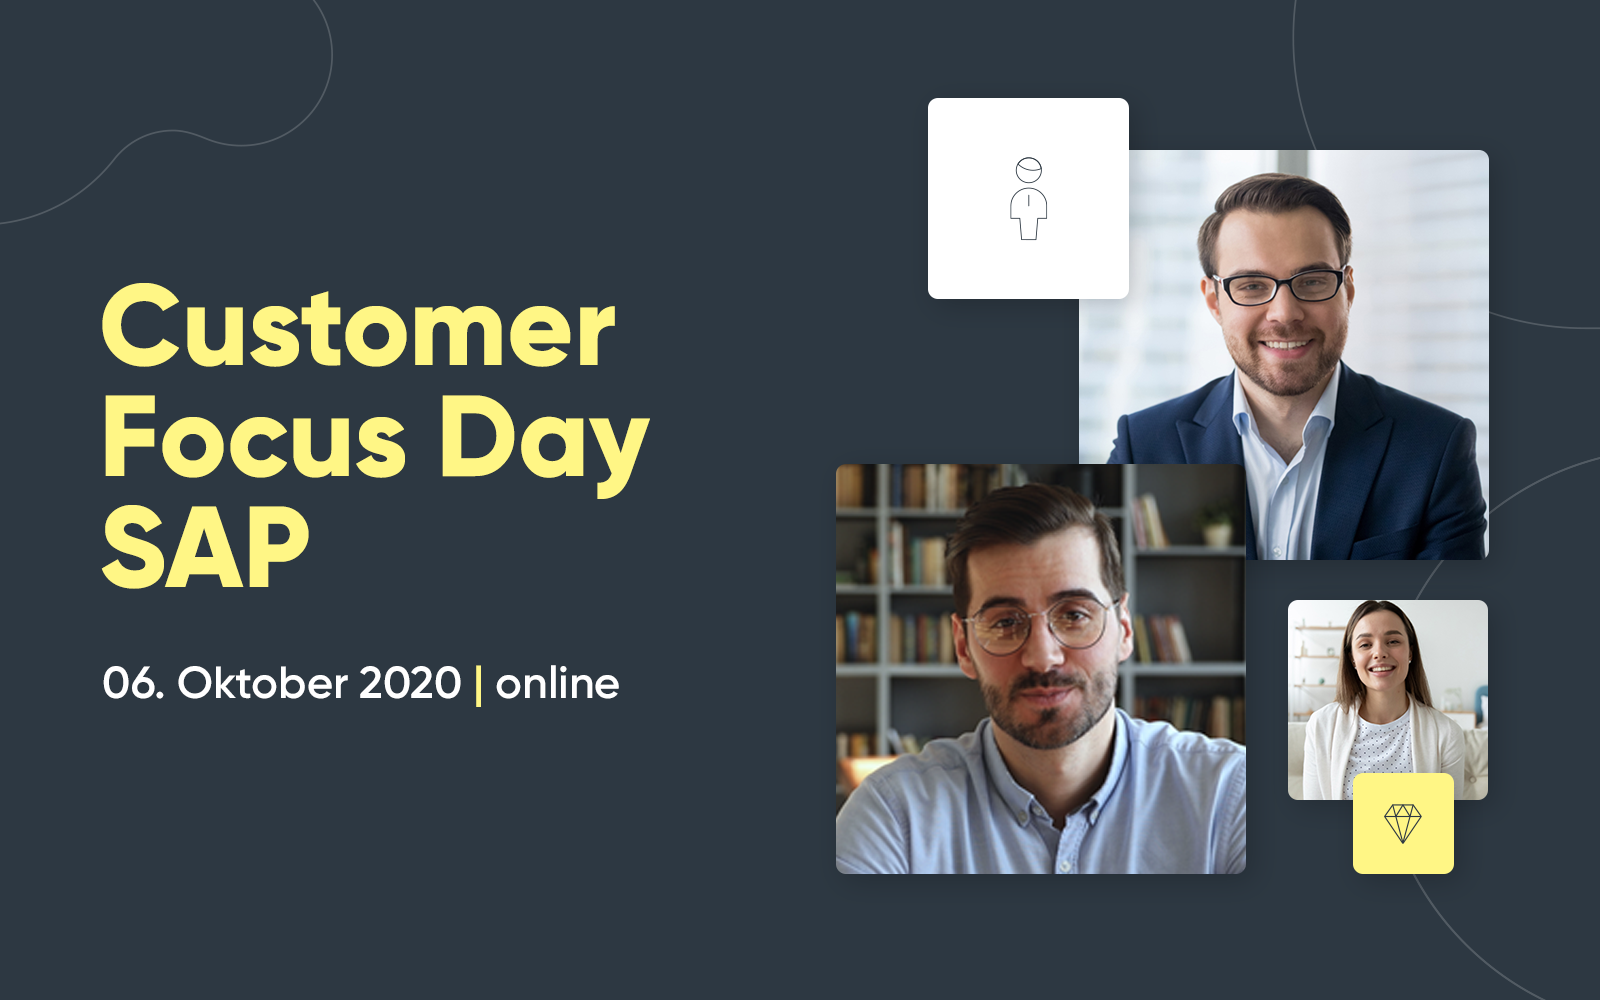 valantic Customer Focus Day SAP am 6. Oktober 2020, kostenloses Online-Event